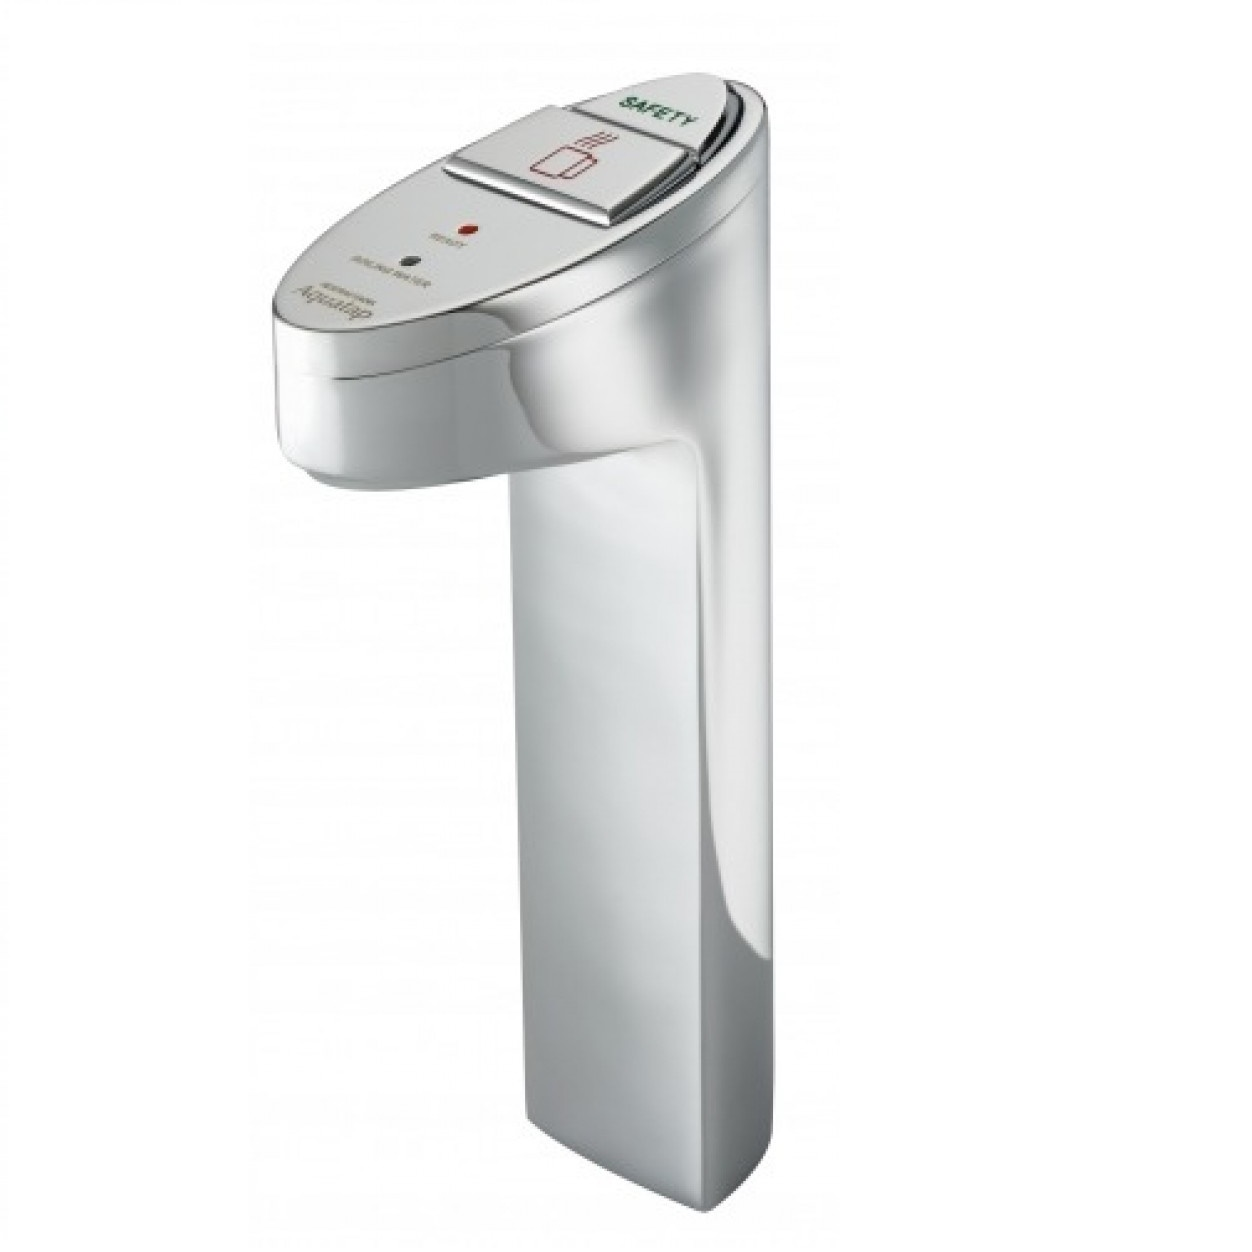 Heatrae Sadia Aquatap Boiling and Chilled Water Tap 95200262